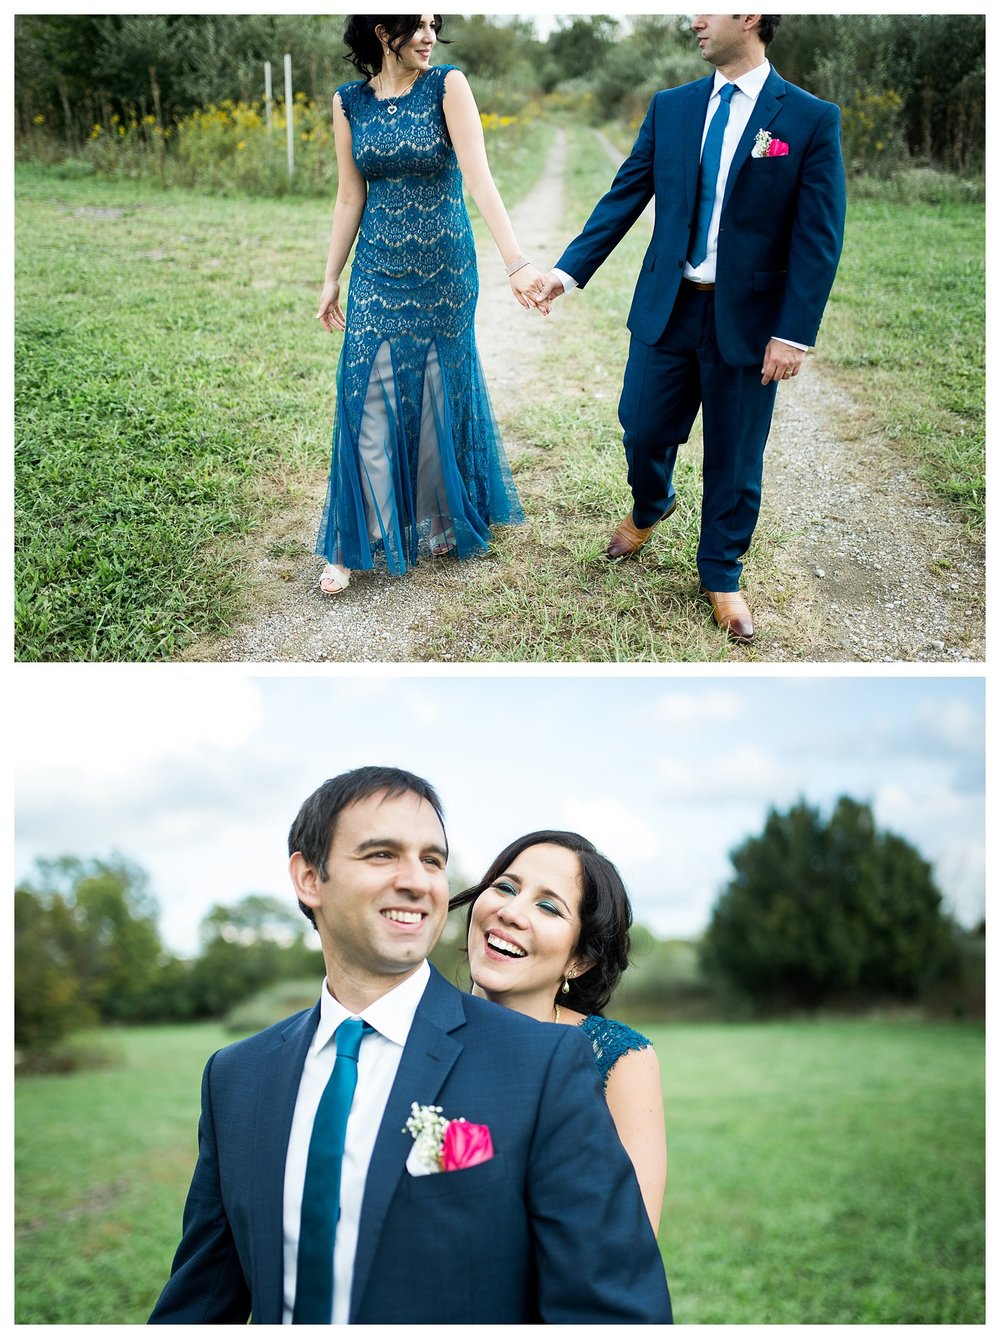 everleigh-photography-cincinnati-wedding-photographer-great-wolf-lodge-elopement-13